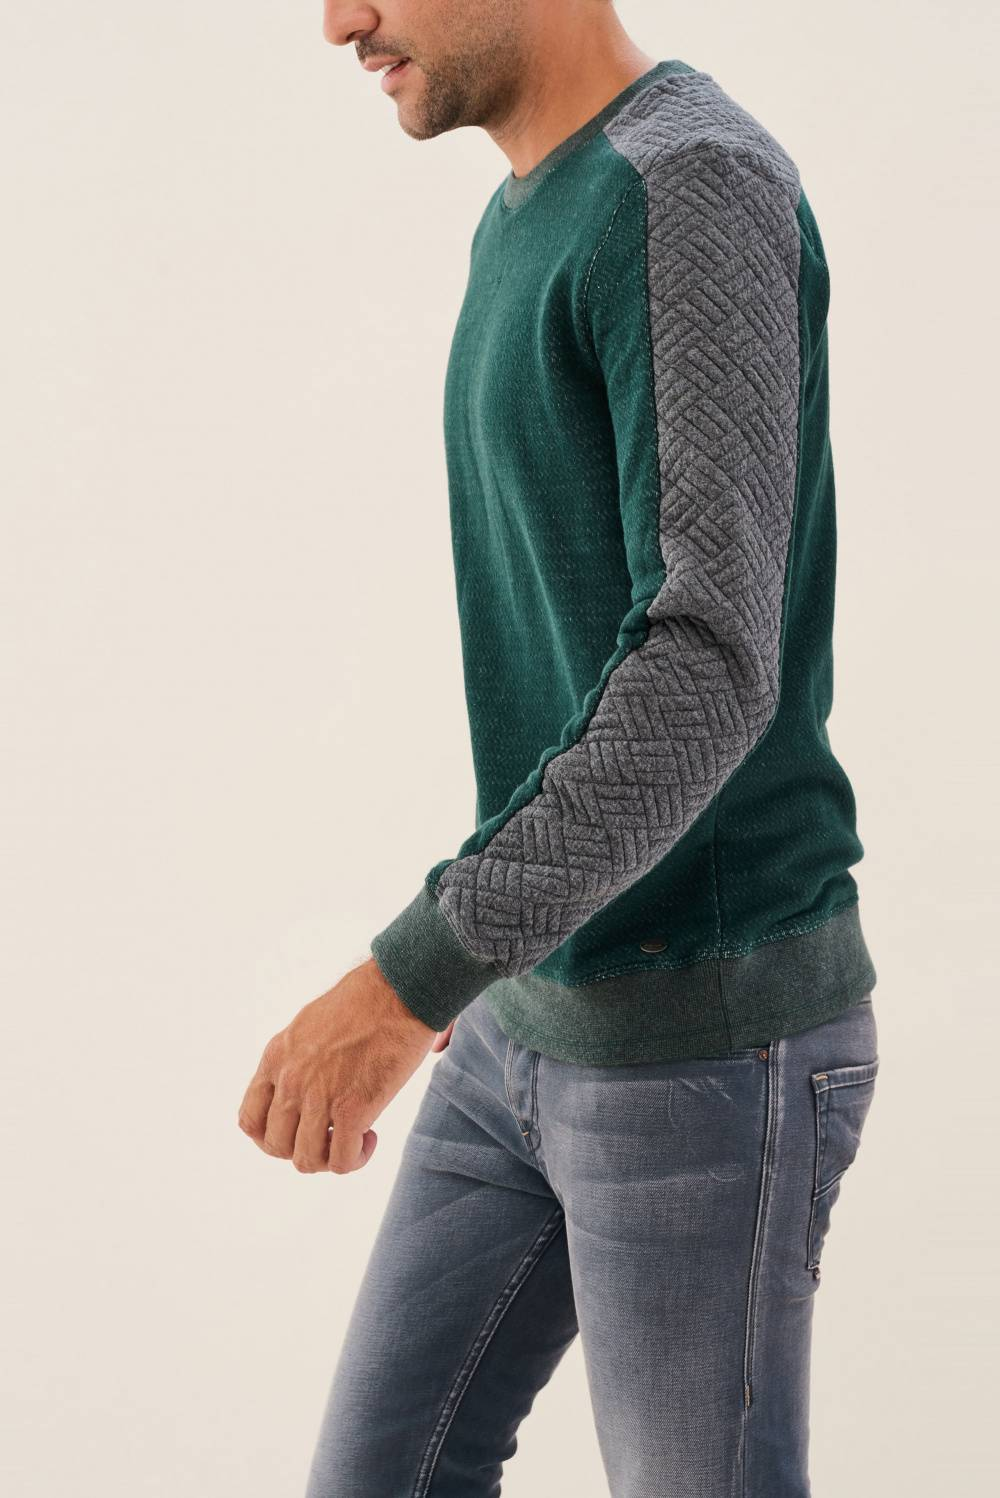 Sweatshirt with detail on sleeves - Salsa